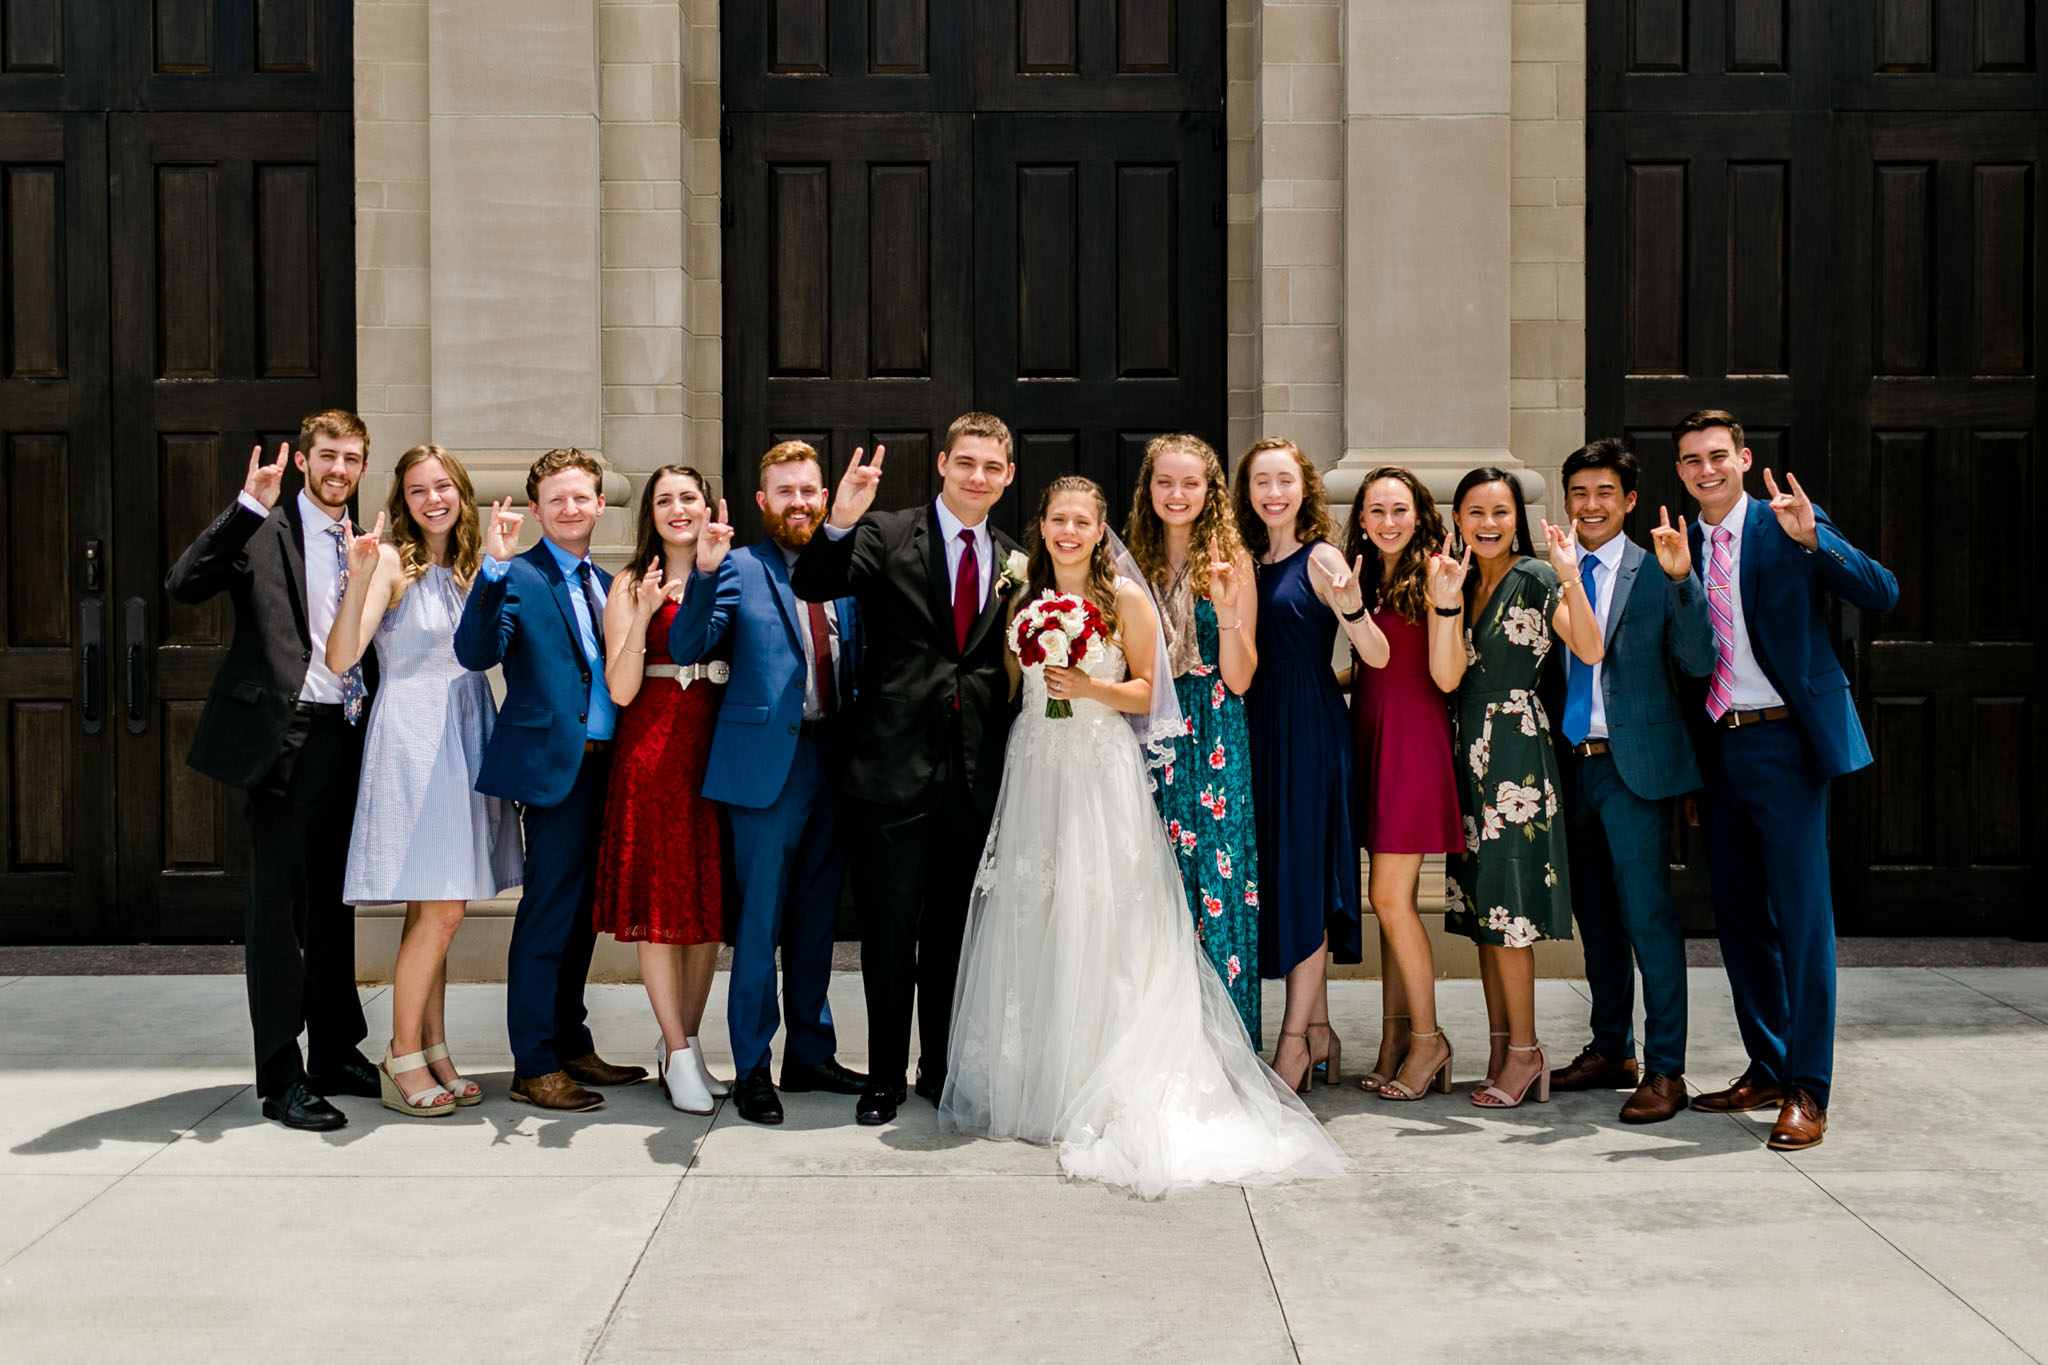 NC State grads at wedding | Raleigh Wedding Photographer | By G. Lin Photography